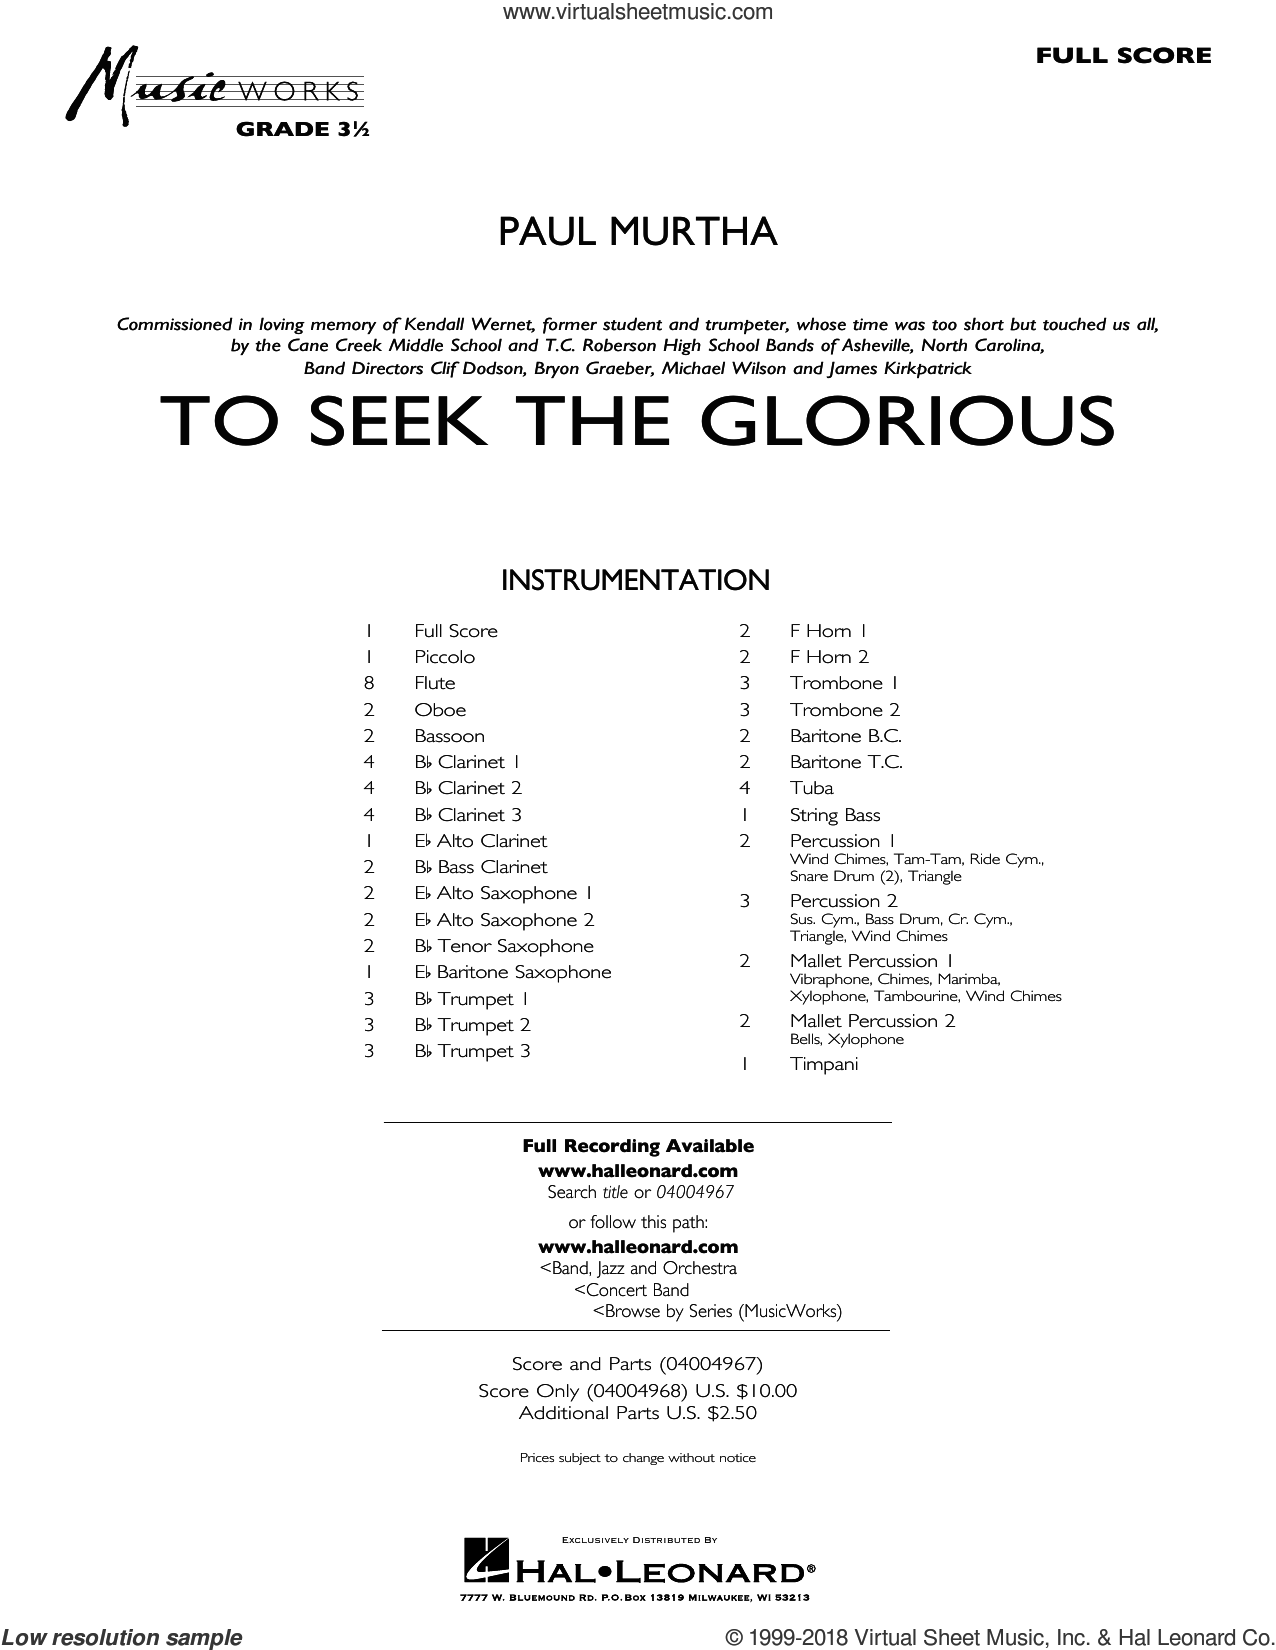 To Seek the Glorious (COMPLETE) sheet music for concert band by Paul Murtha, intermediate skill level